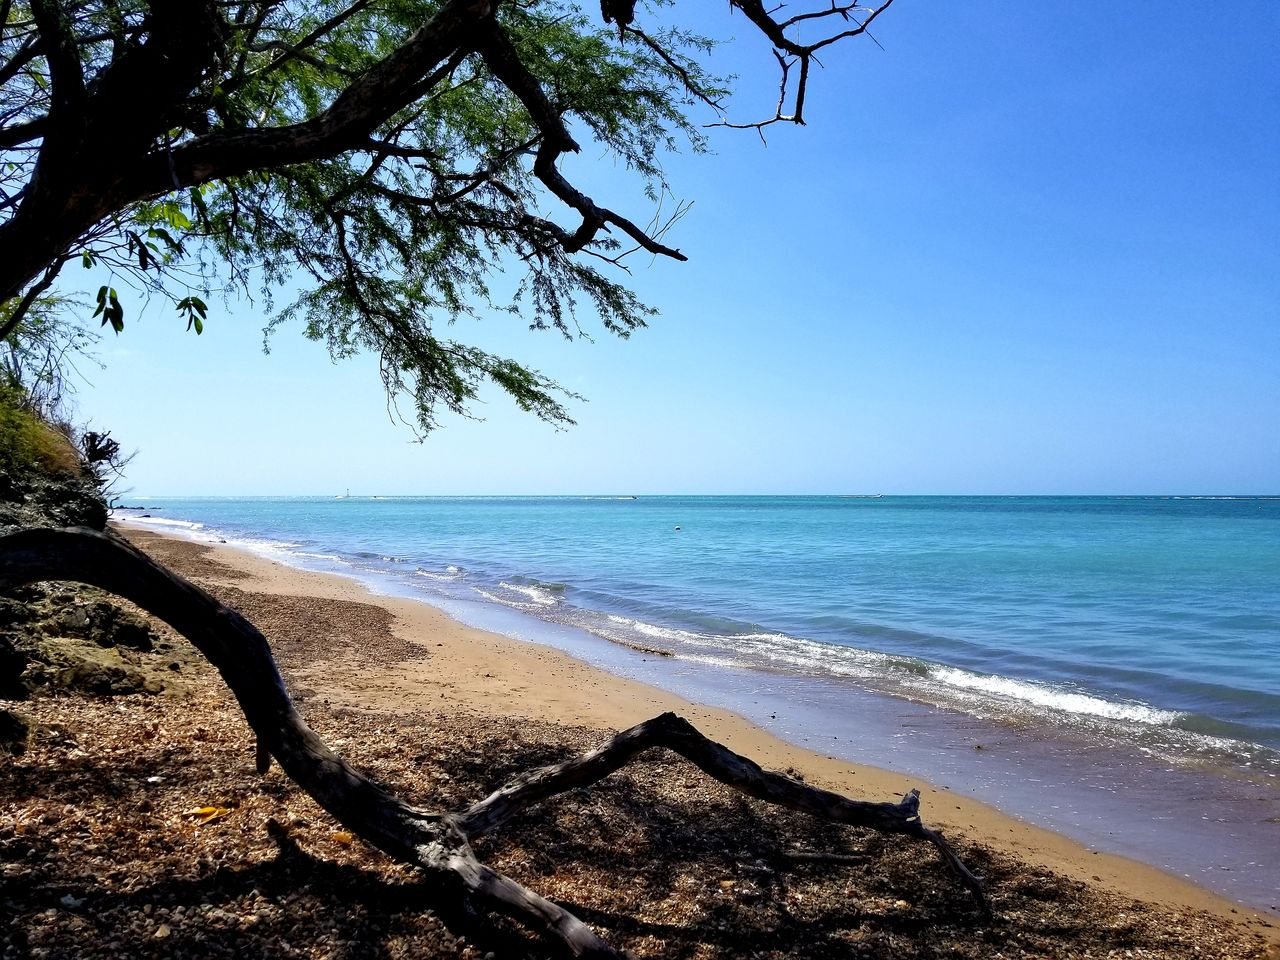 sea, water, beach, land, sky, horizon over water, horizon, scenics - nature, beauty in nature, tranquility, tranquil scene, tree, nature, plant, sand, clear sky, no people, blue, day, outdoors